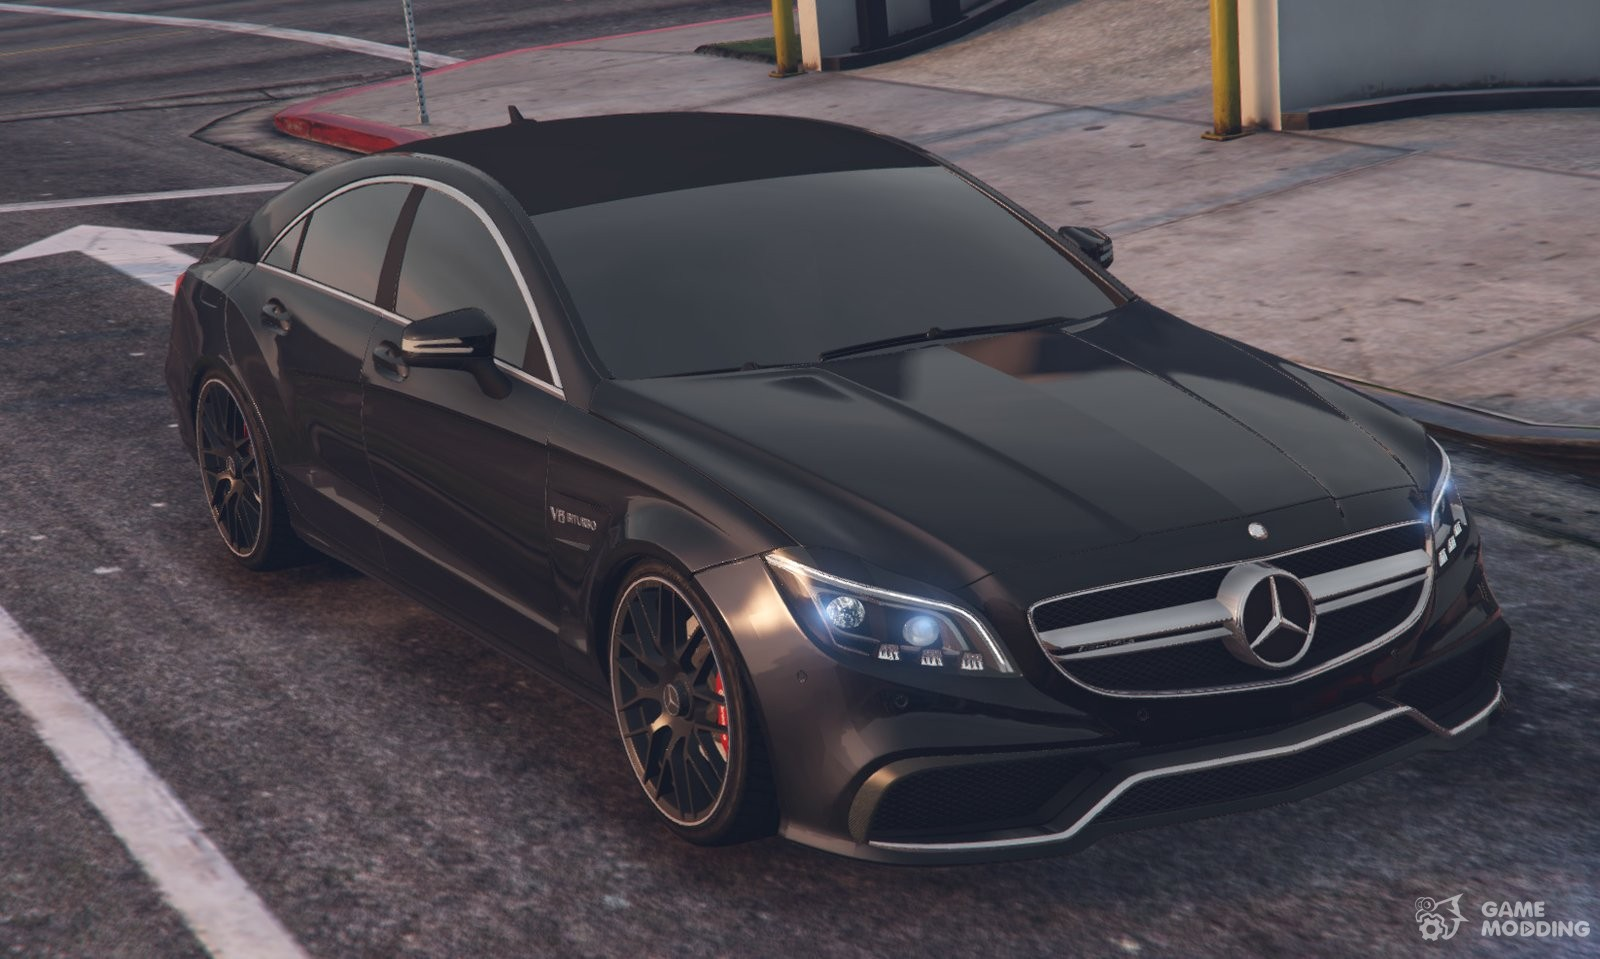 Mercedes benz cls 63 amg 2015 for gta 5 for Mercedes benz gta